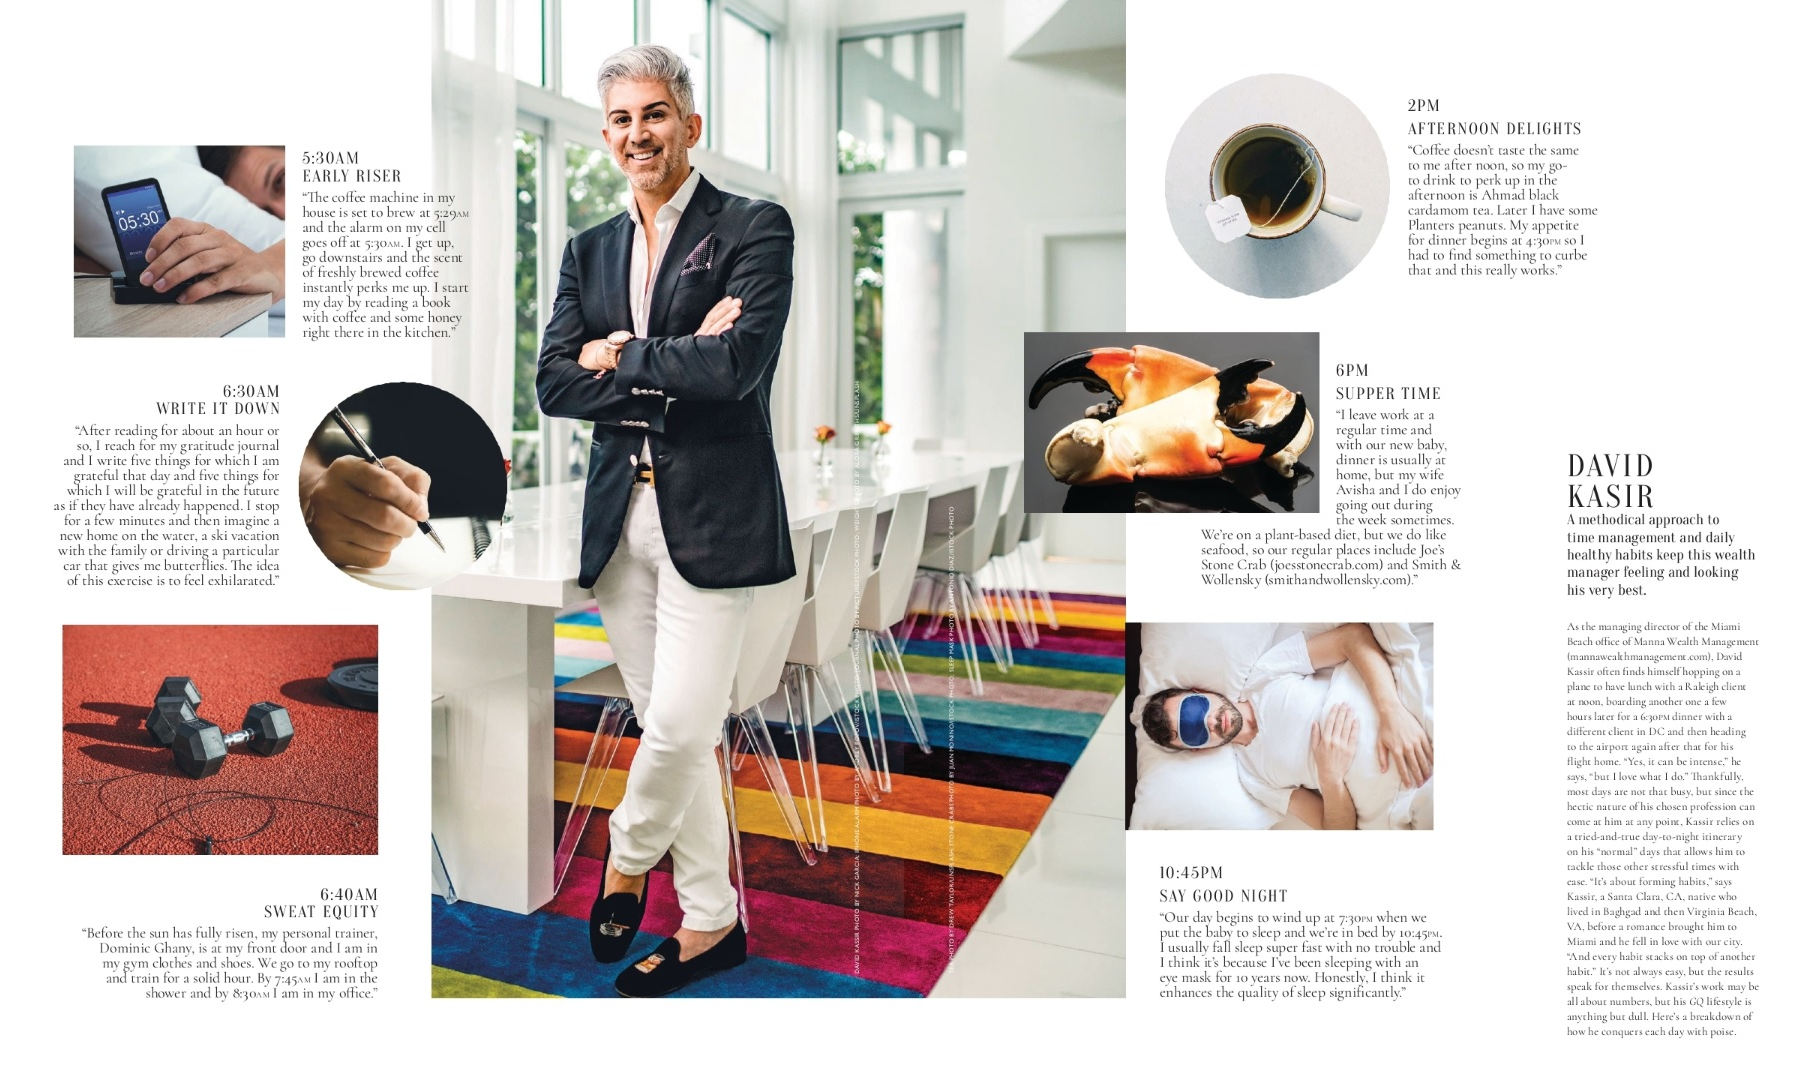 Miami Magazine – On The Clock feature Spotlights Miami Financial Advisor David D. Kassir